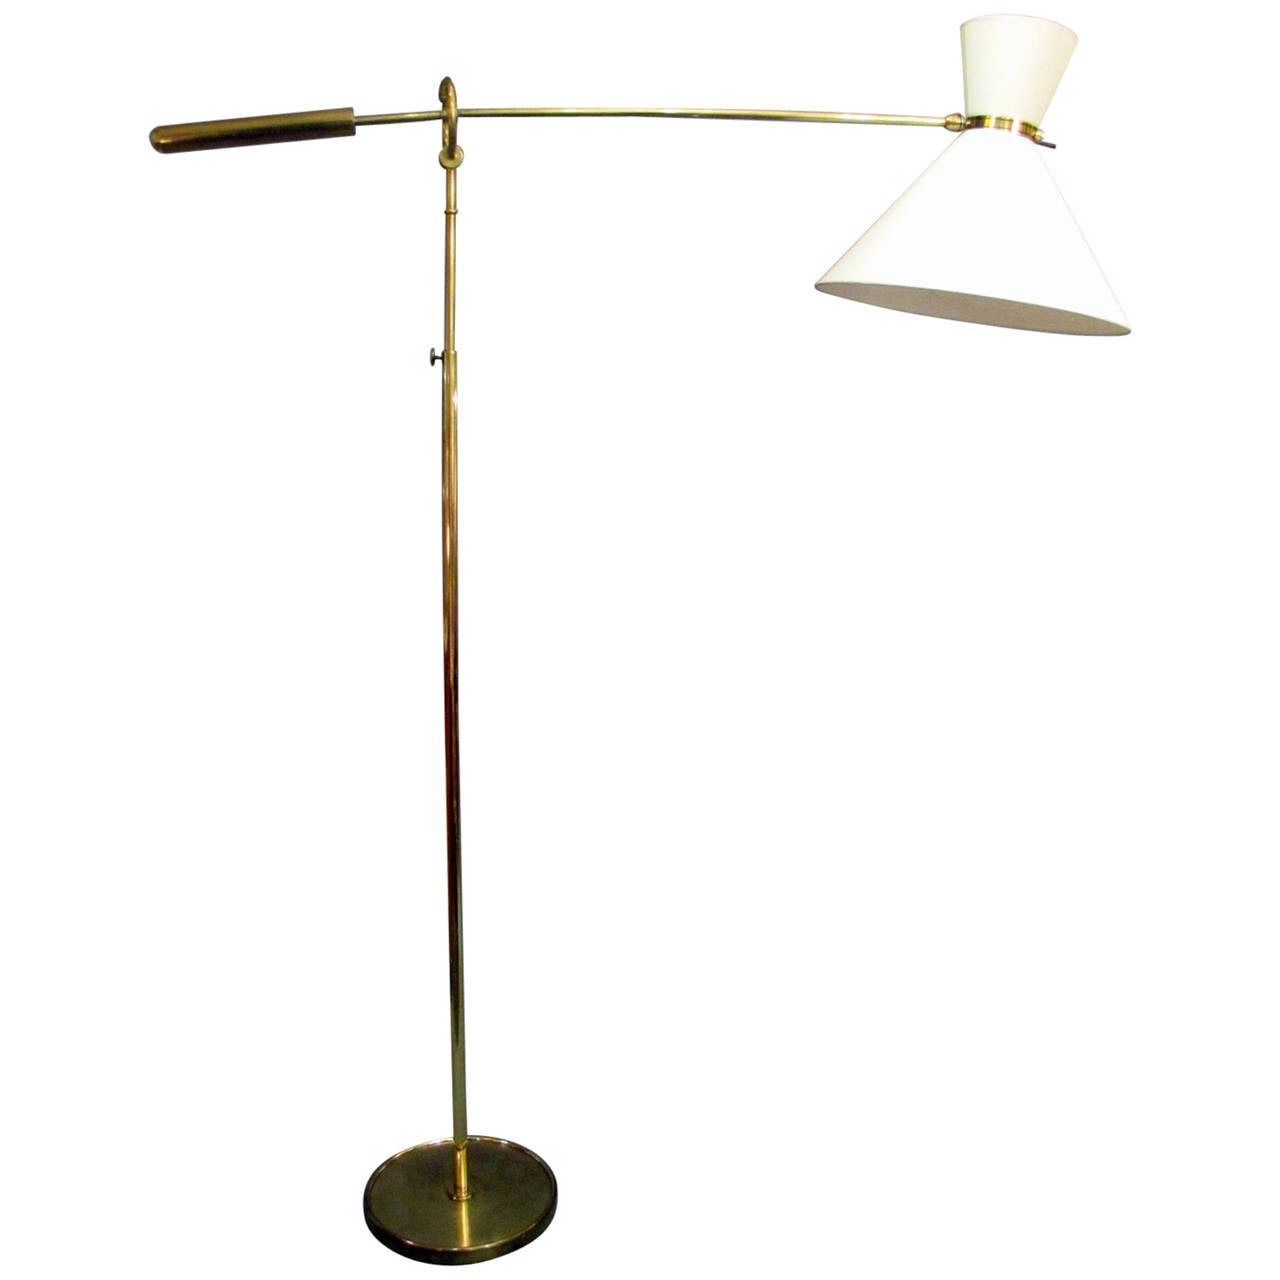 Lunel edition adjustable floor lamp france 1950s at 1stdibs for 1950s floor lamps